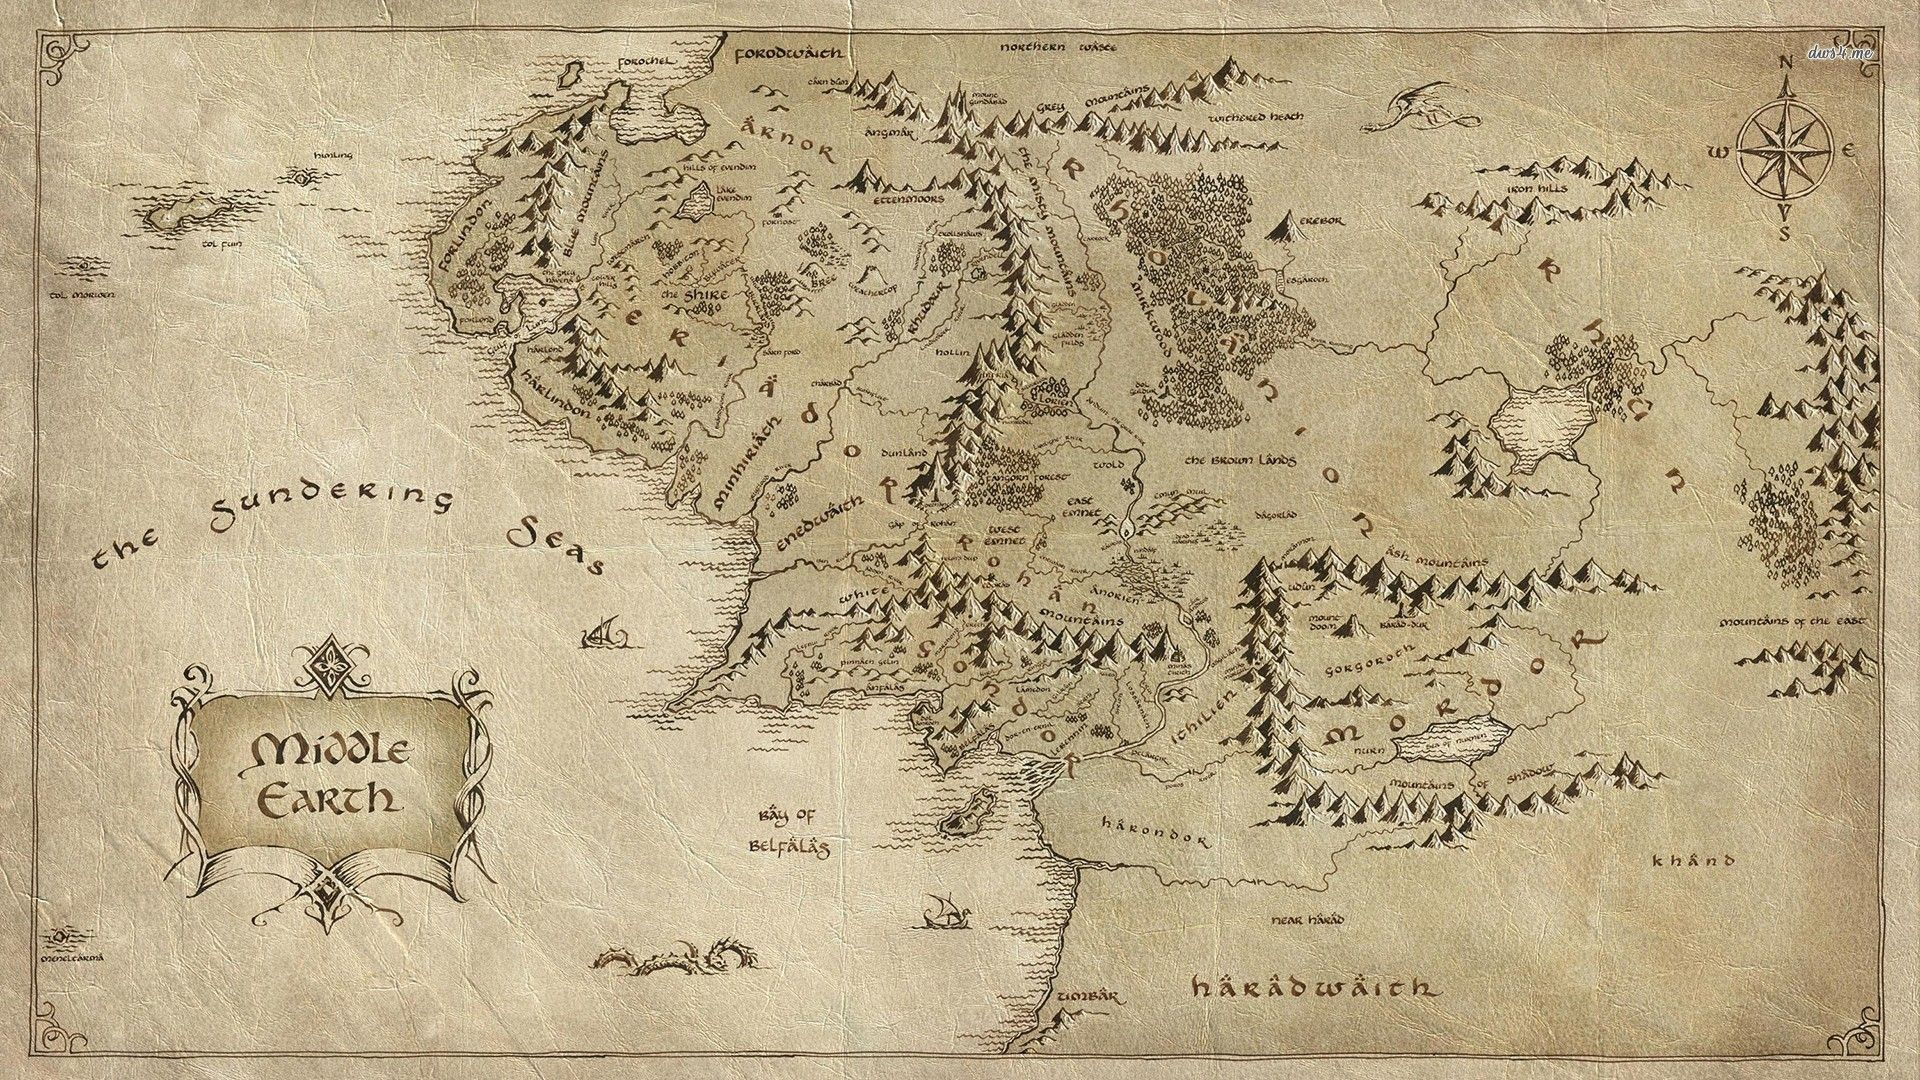 Middle Earth Map The Lord Of The Rings Wallpaper Movie - Chicago map ring